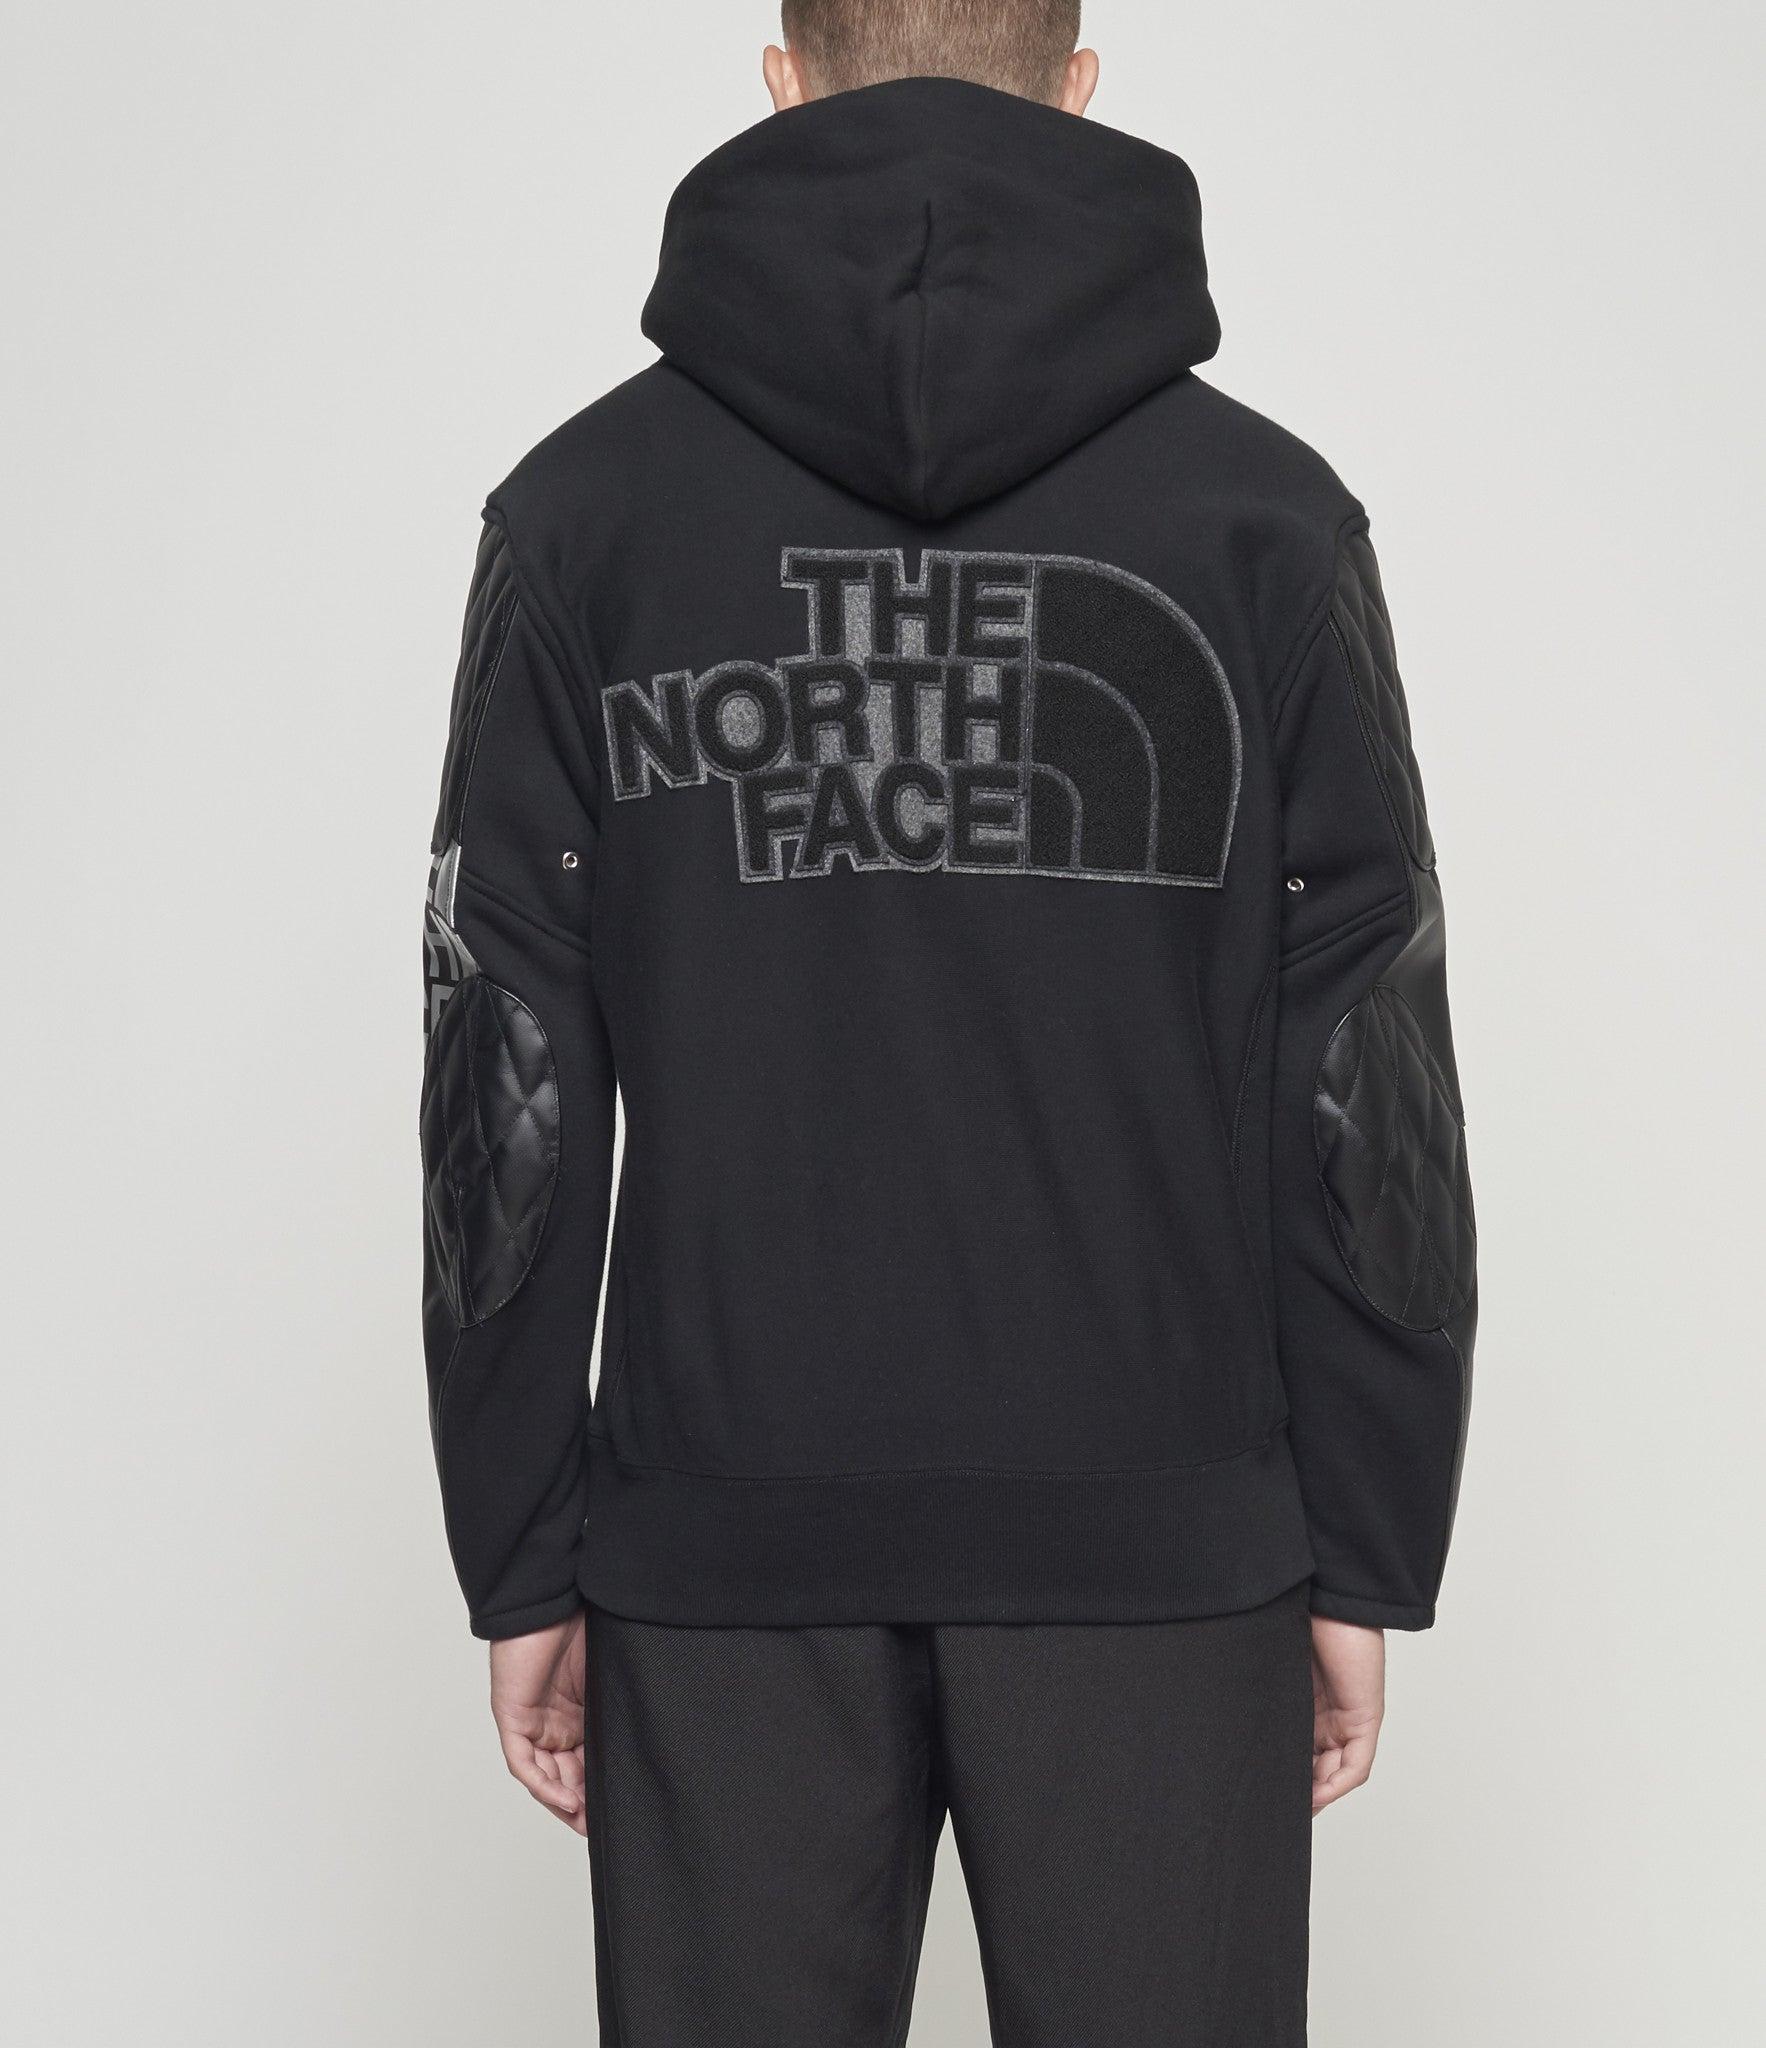 Junya Watanabe x The North Face Hoodie